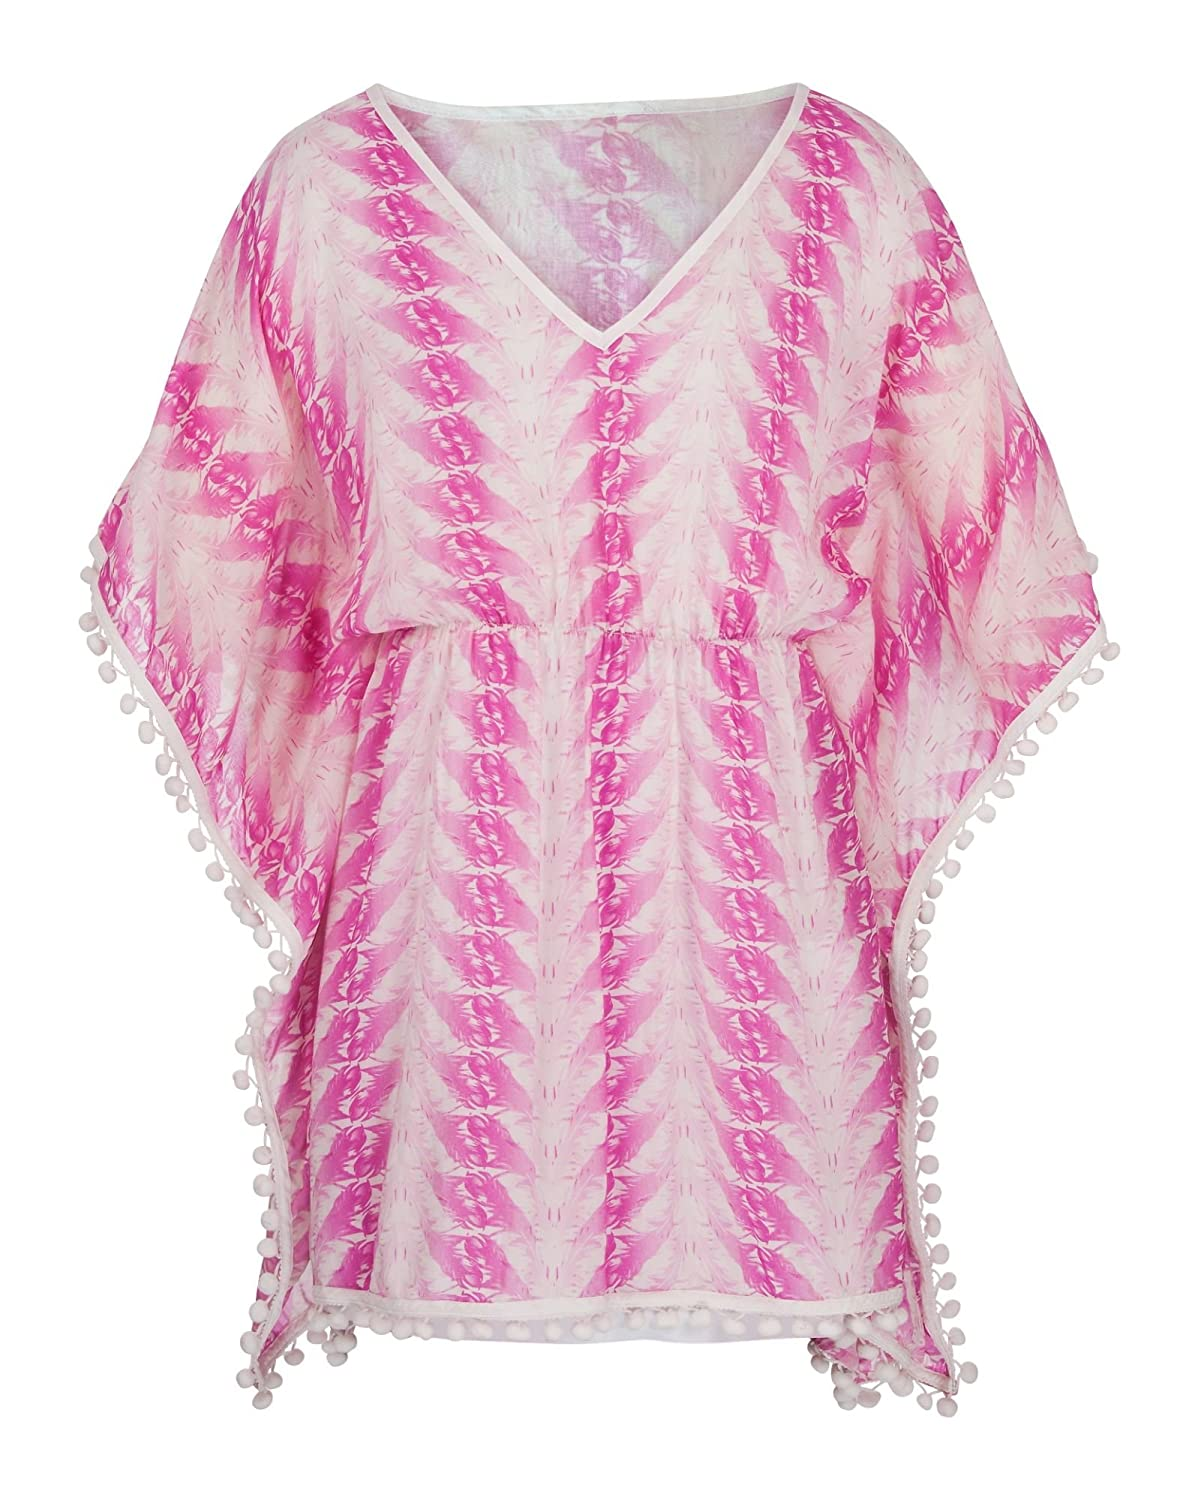 Snapper Rock Girls Kaftan Batwing Dress at the Beach or Pool Summer Beachwear 2016 Collection Blue/Purple 1-2 years 86-92cm 1113BW/2